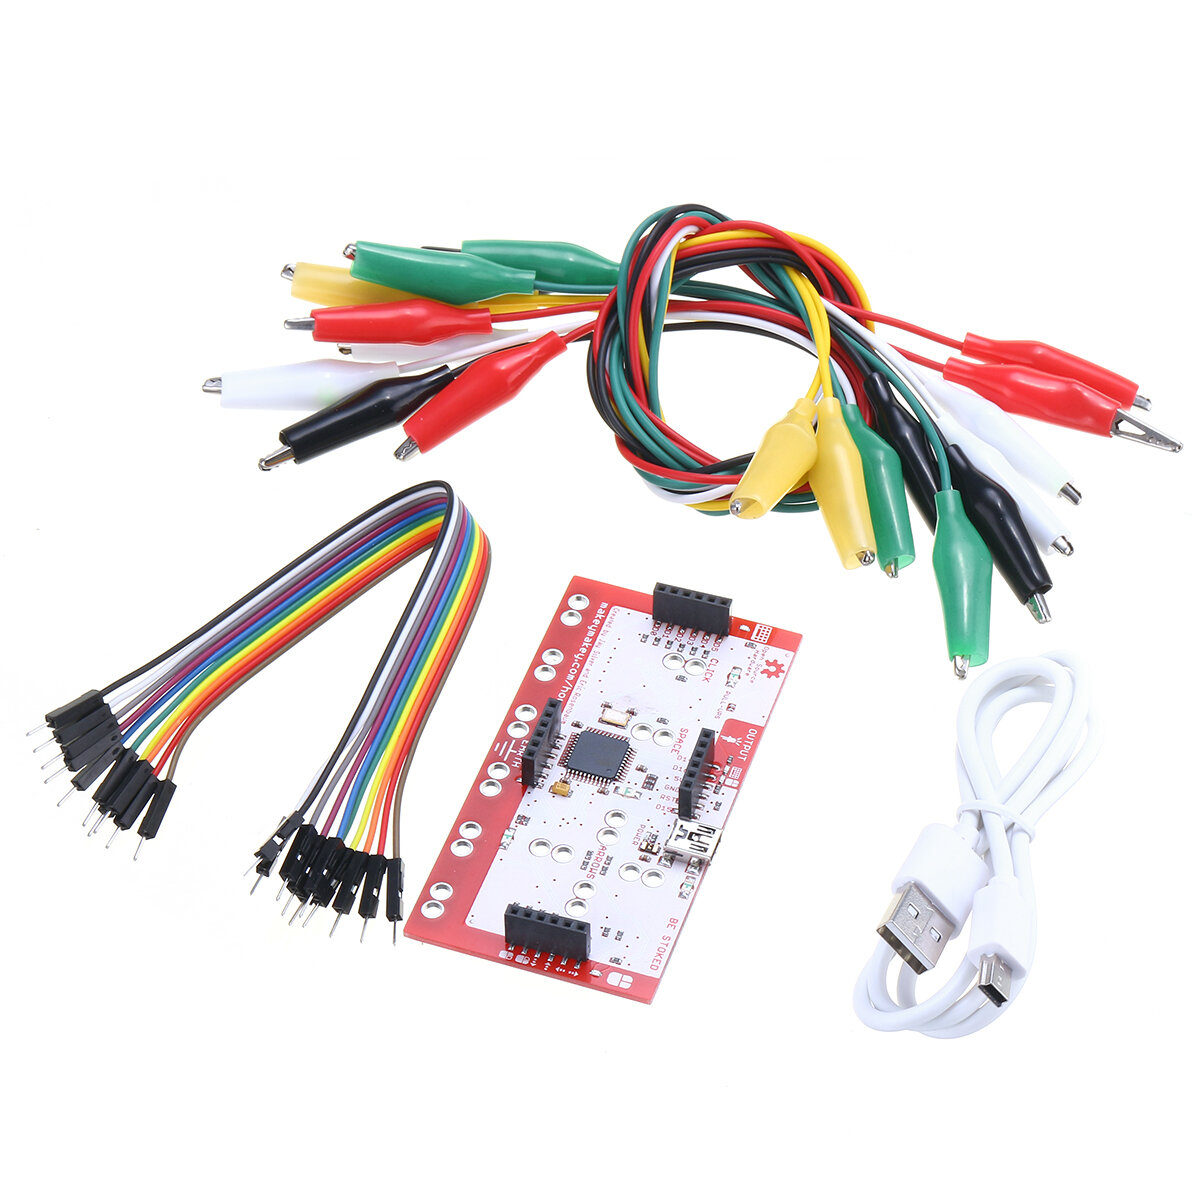 hight resolution of alligator clip jumper wire standard controller board kit for makey makey science toy